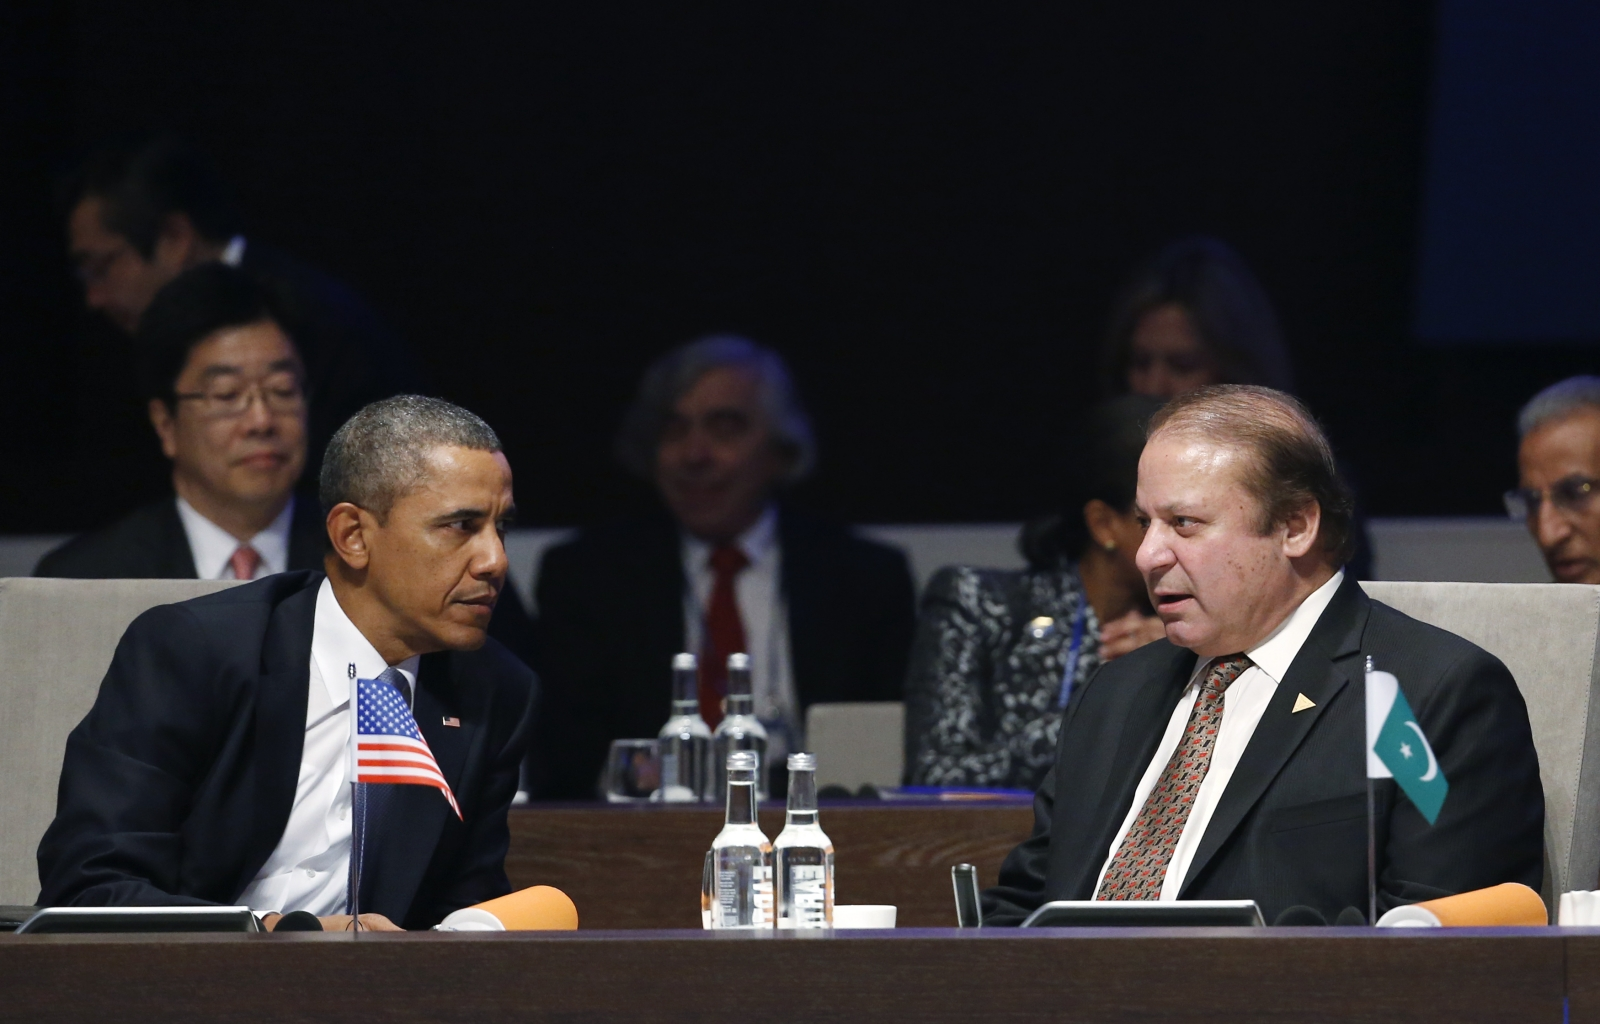 Obama and Pakistan Prime Minister